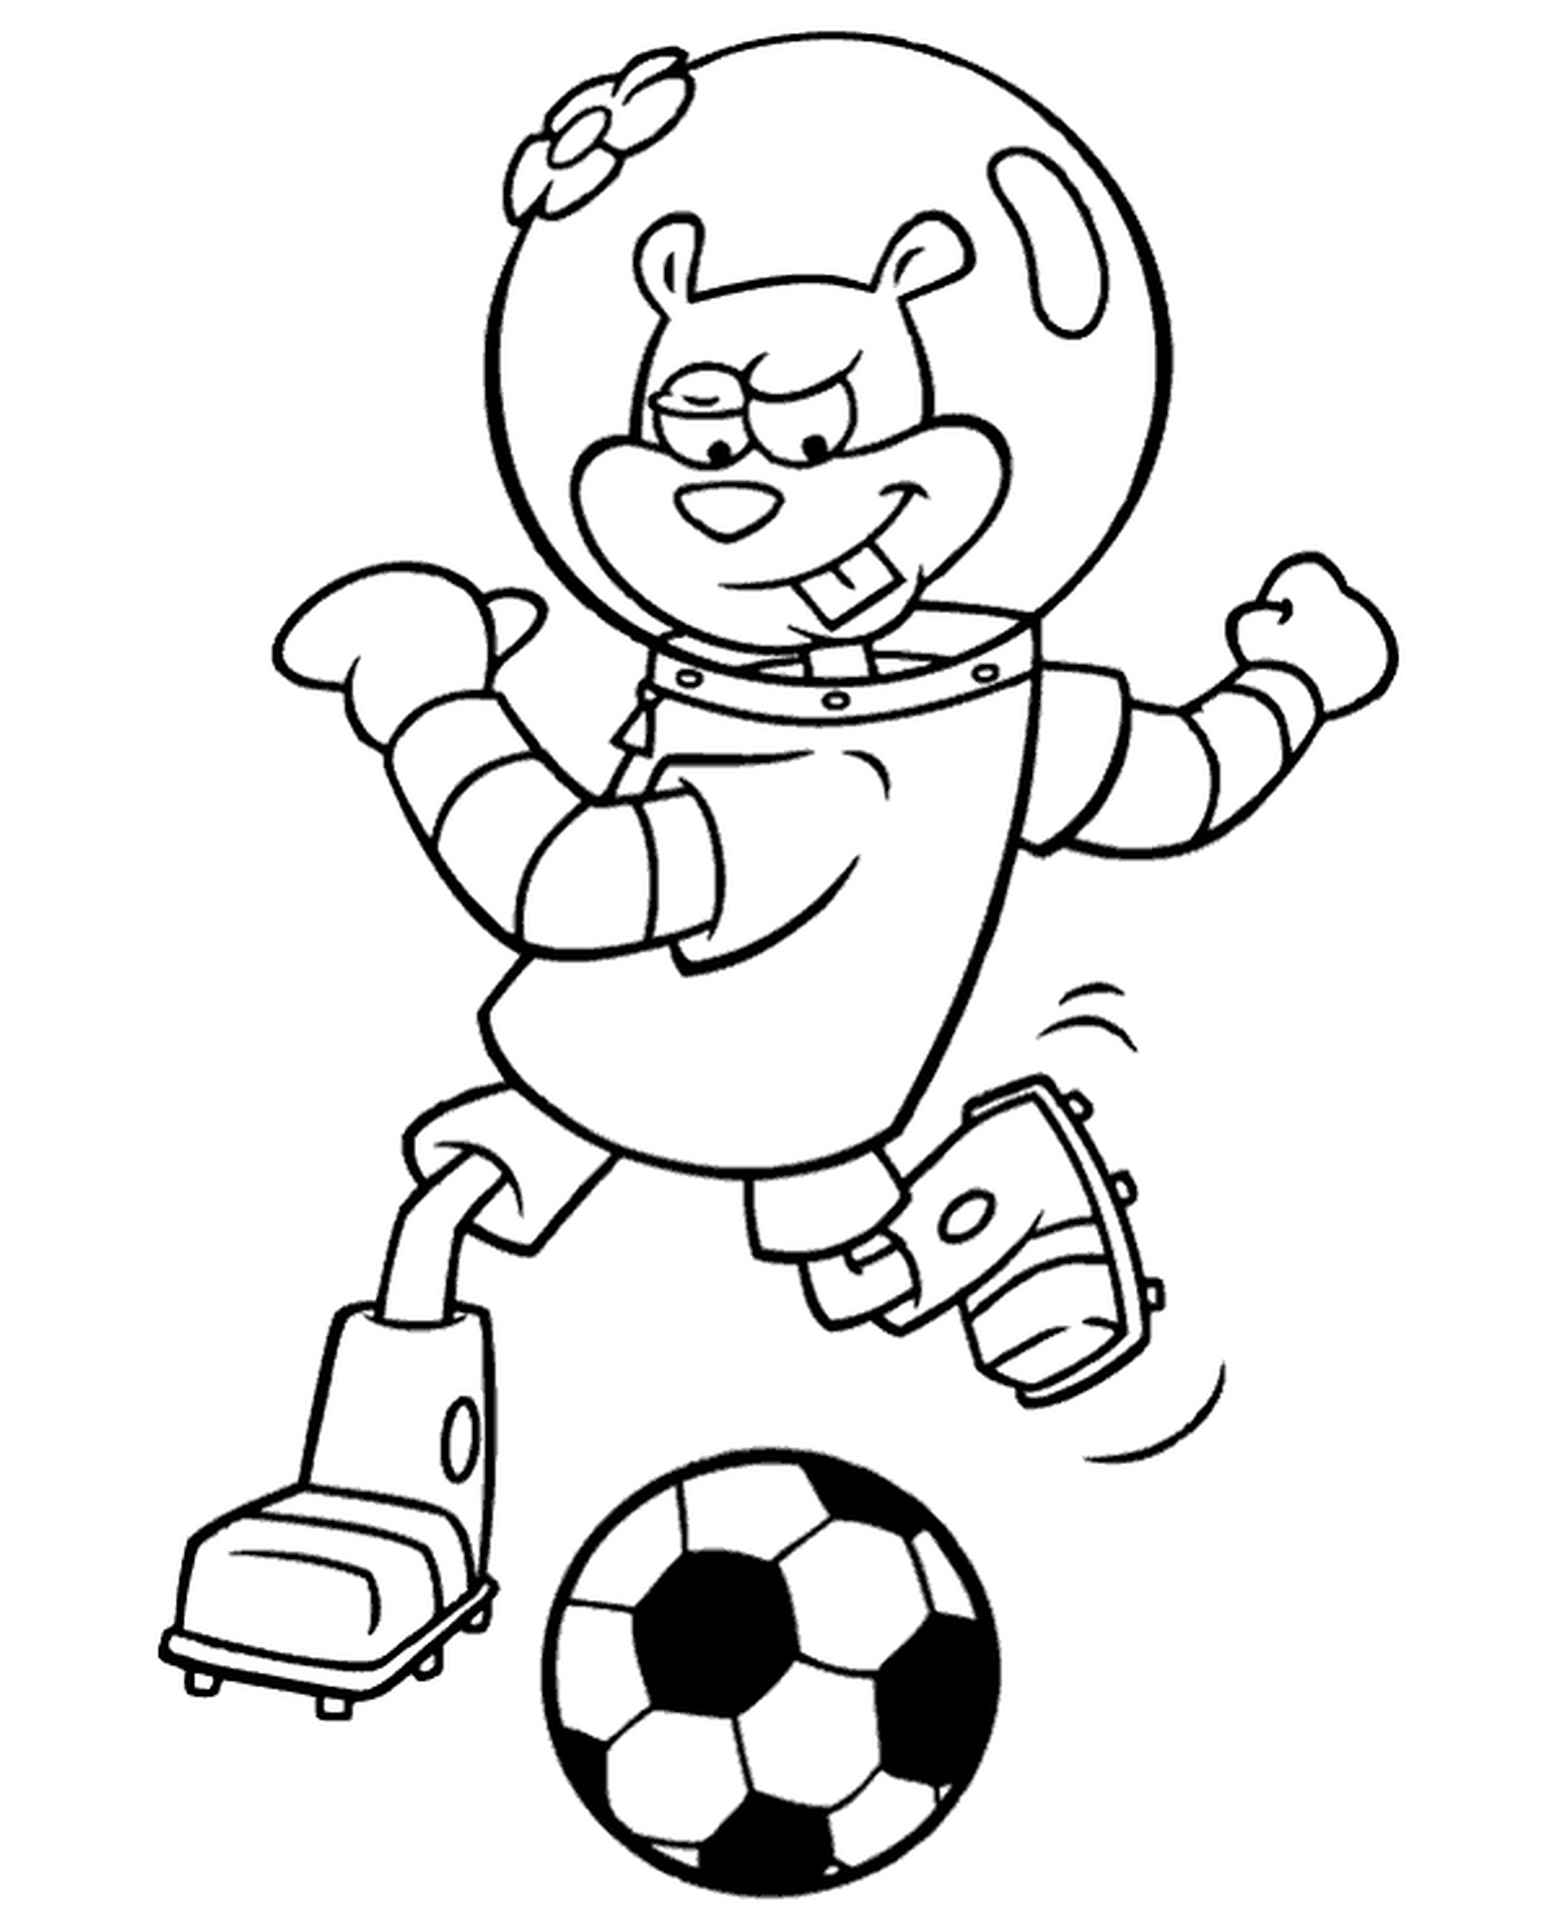 Sandy Plays Soccer Coloring Page